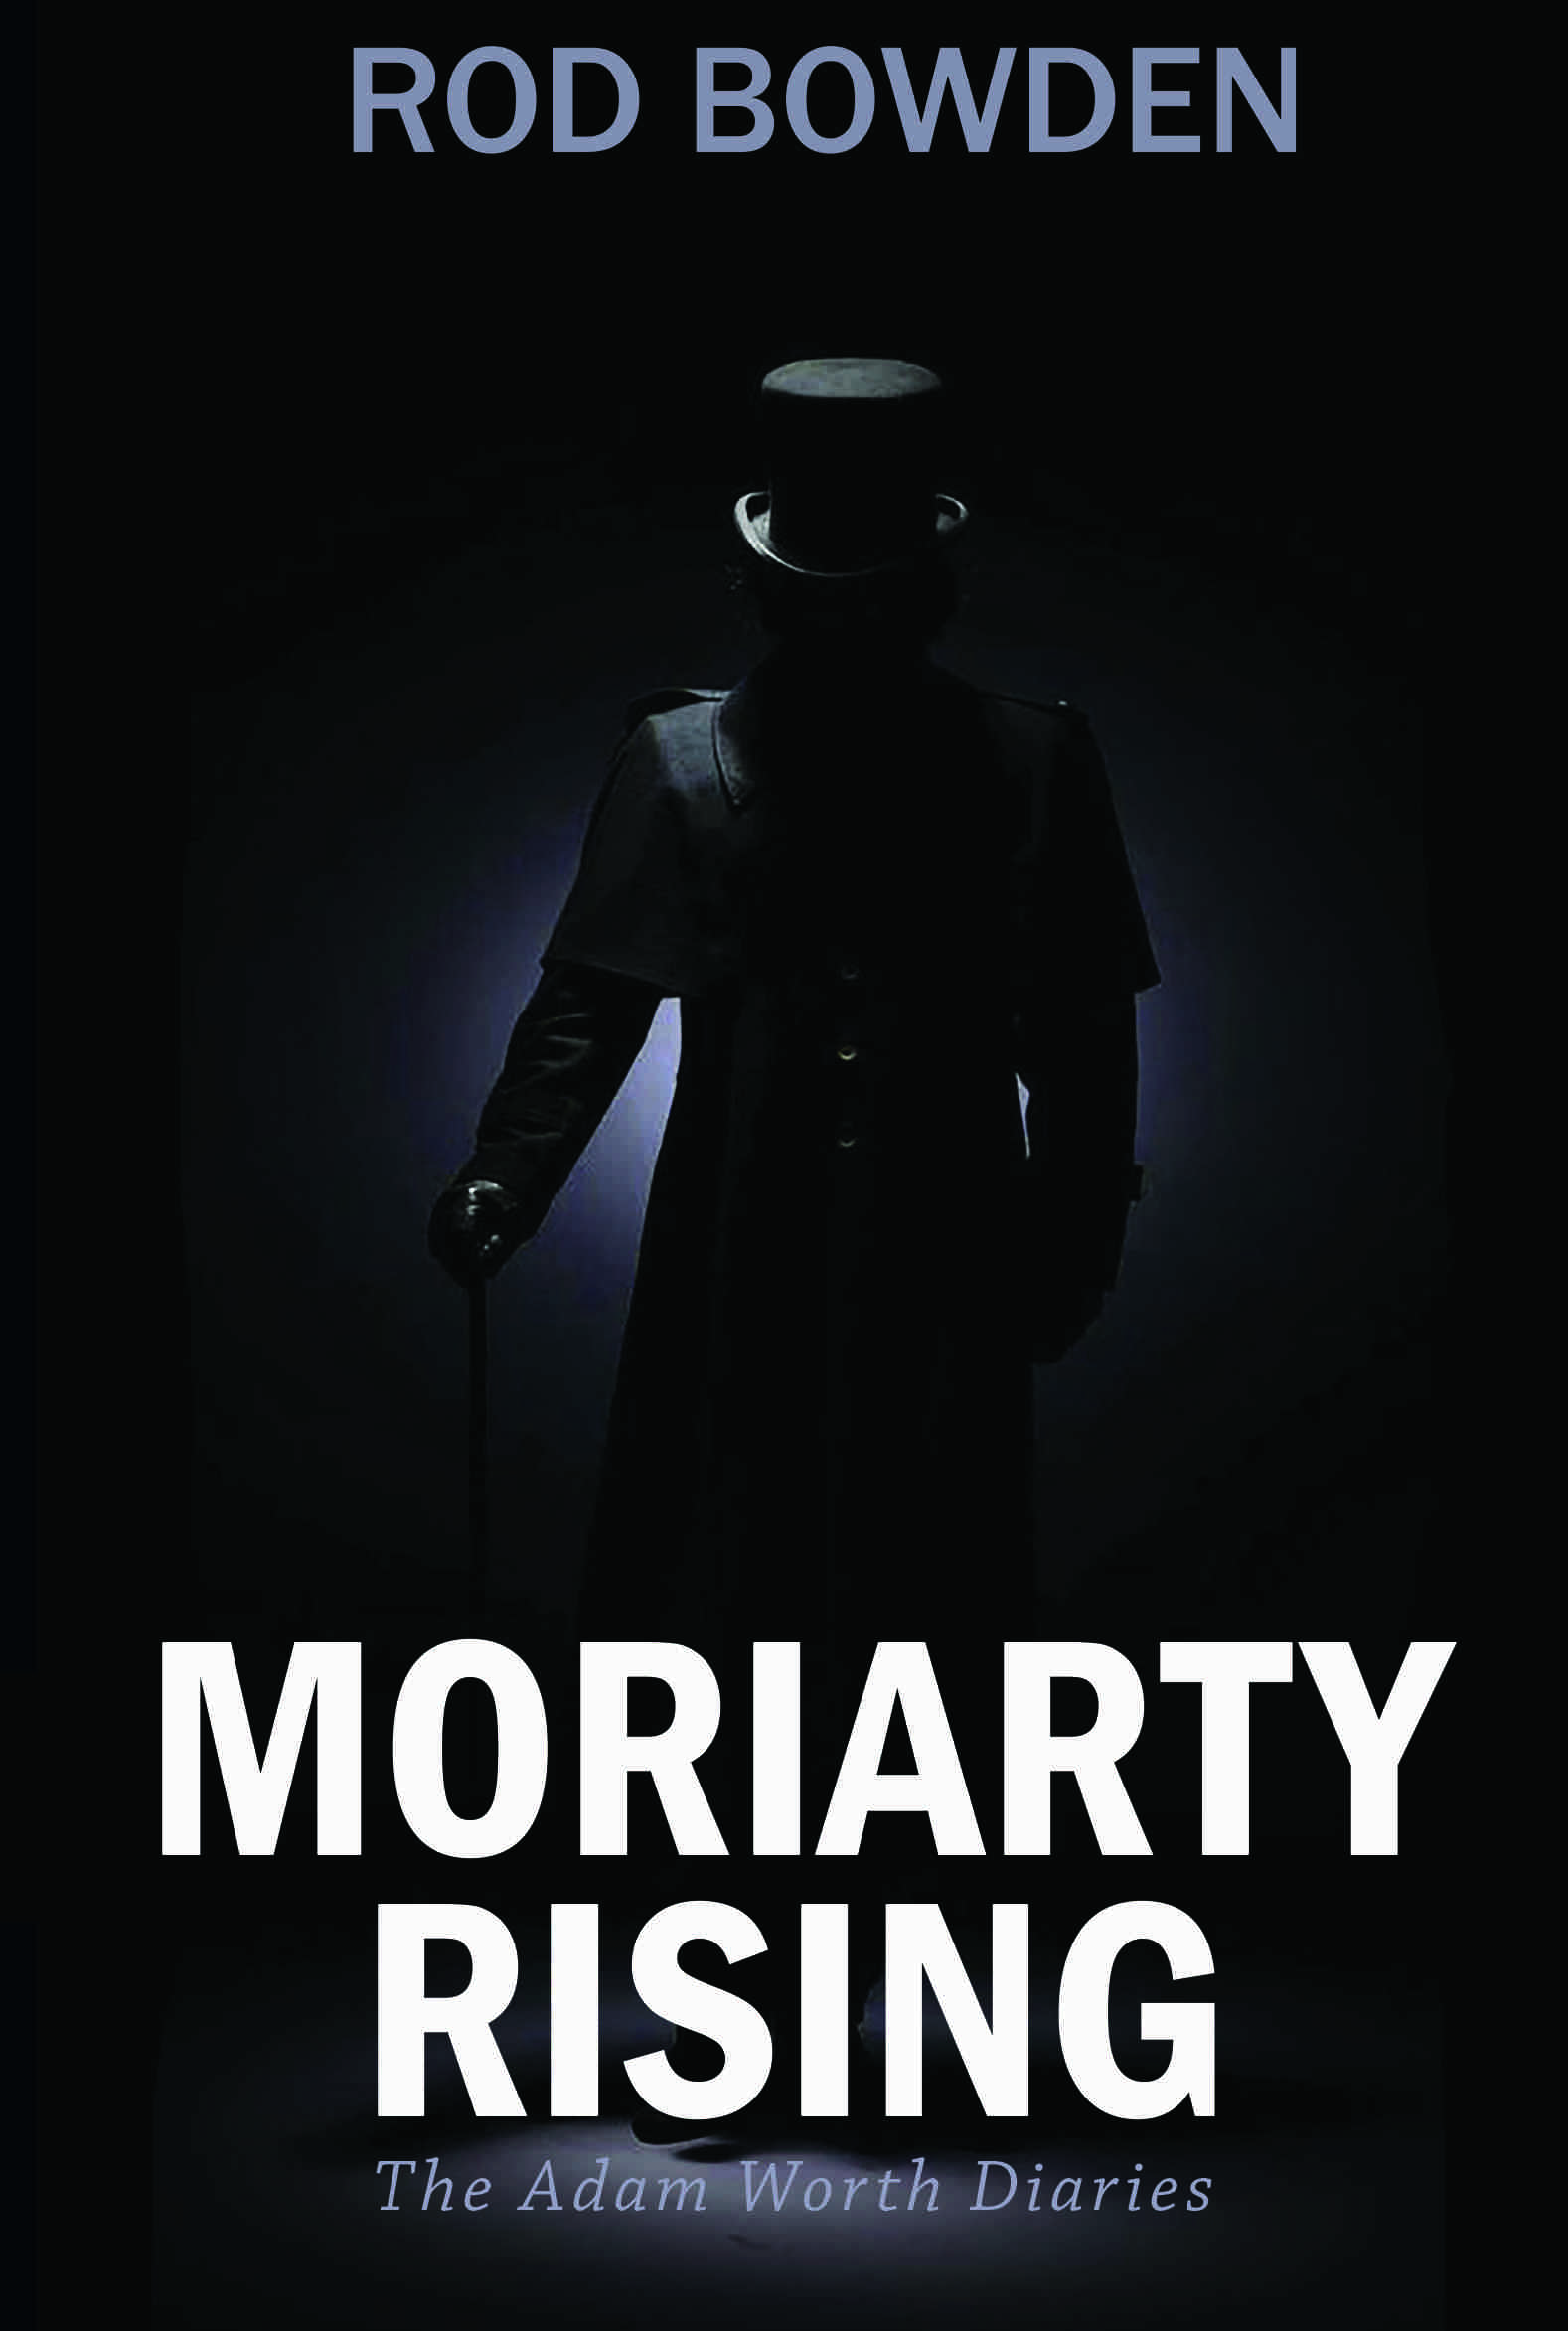 Moriarty Rising: The Adam Worth Diaries, By Rod Bowden